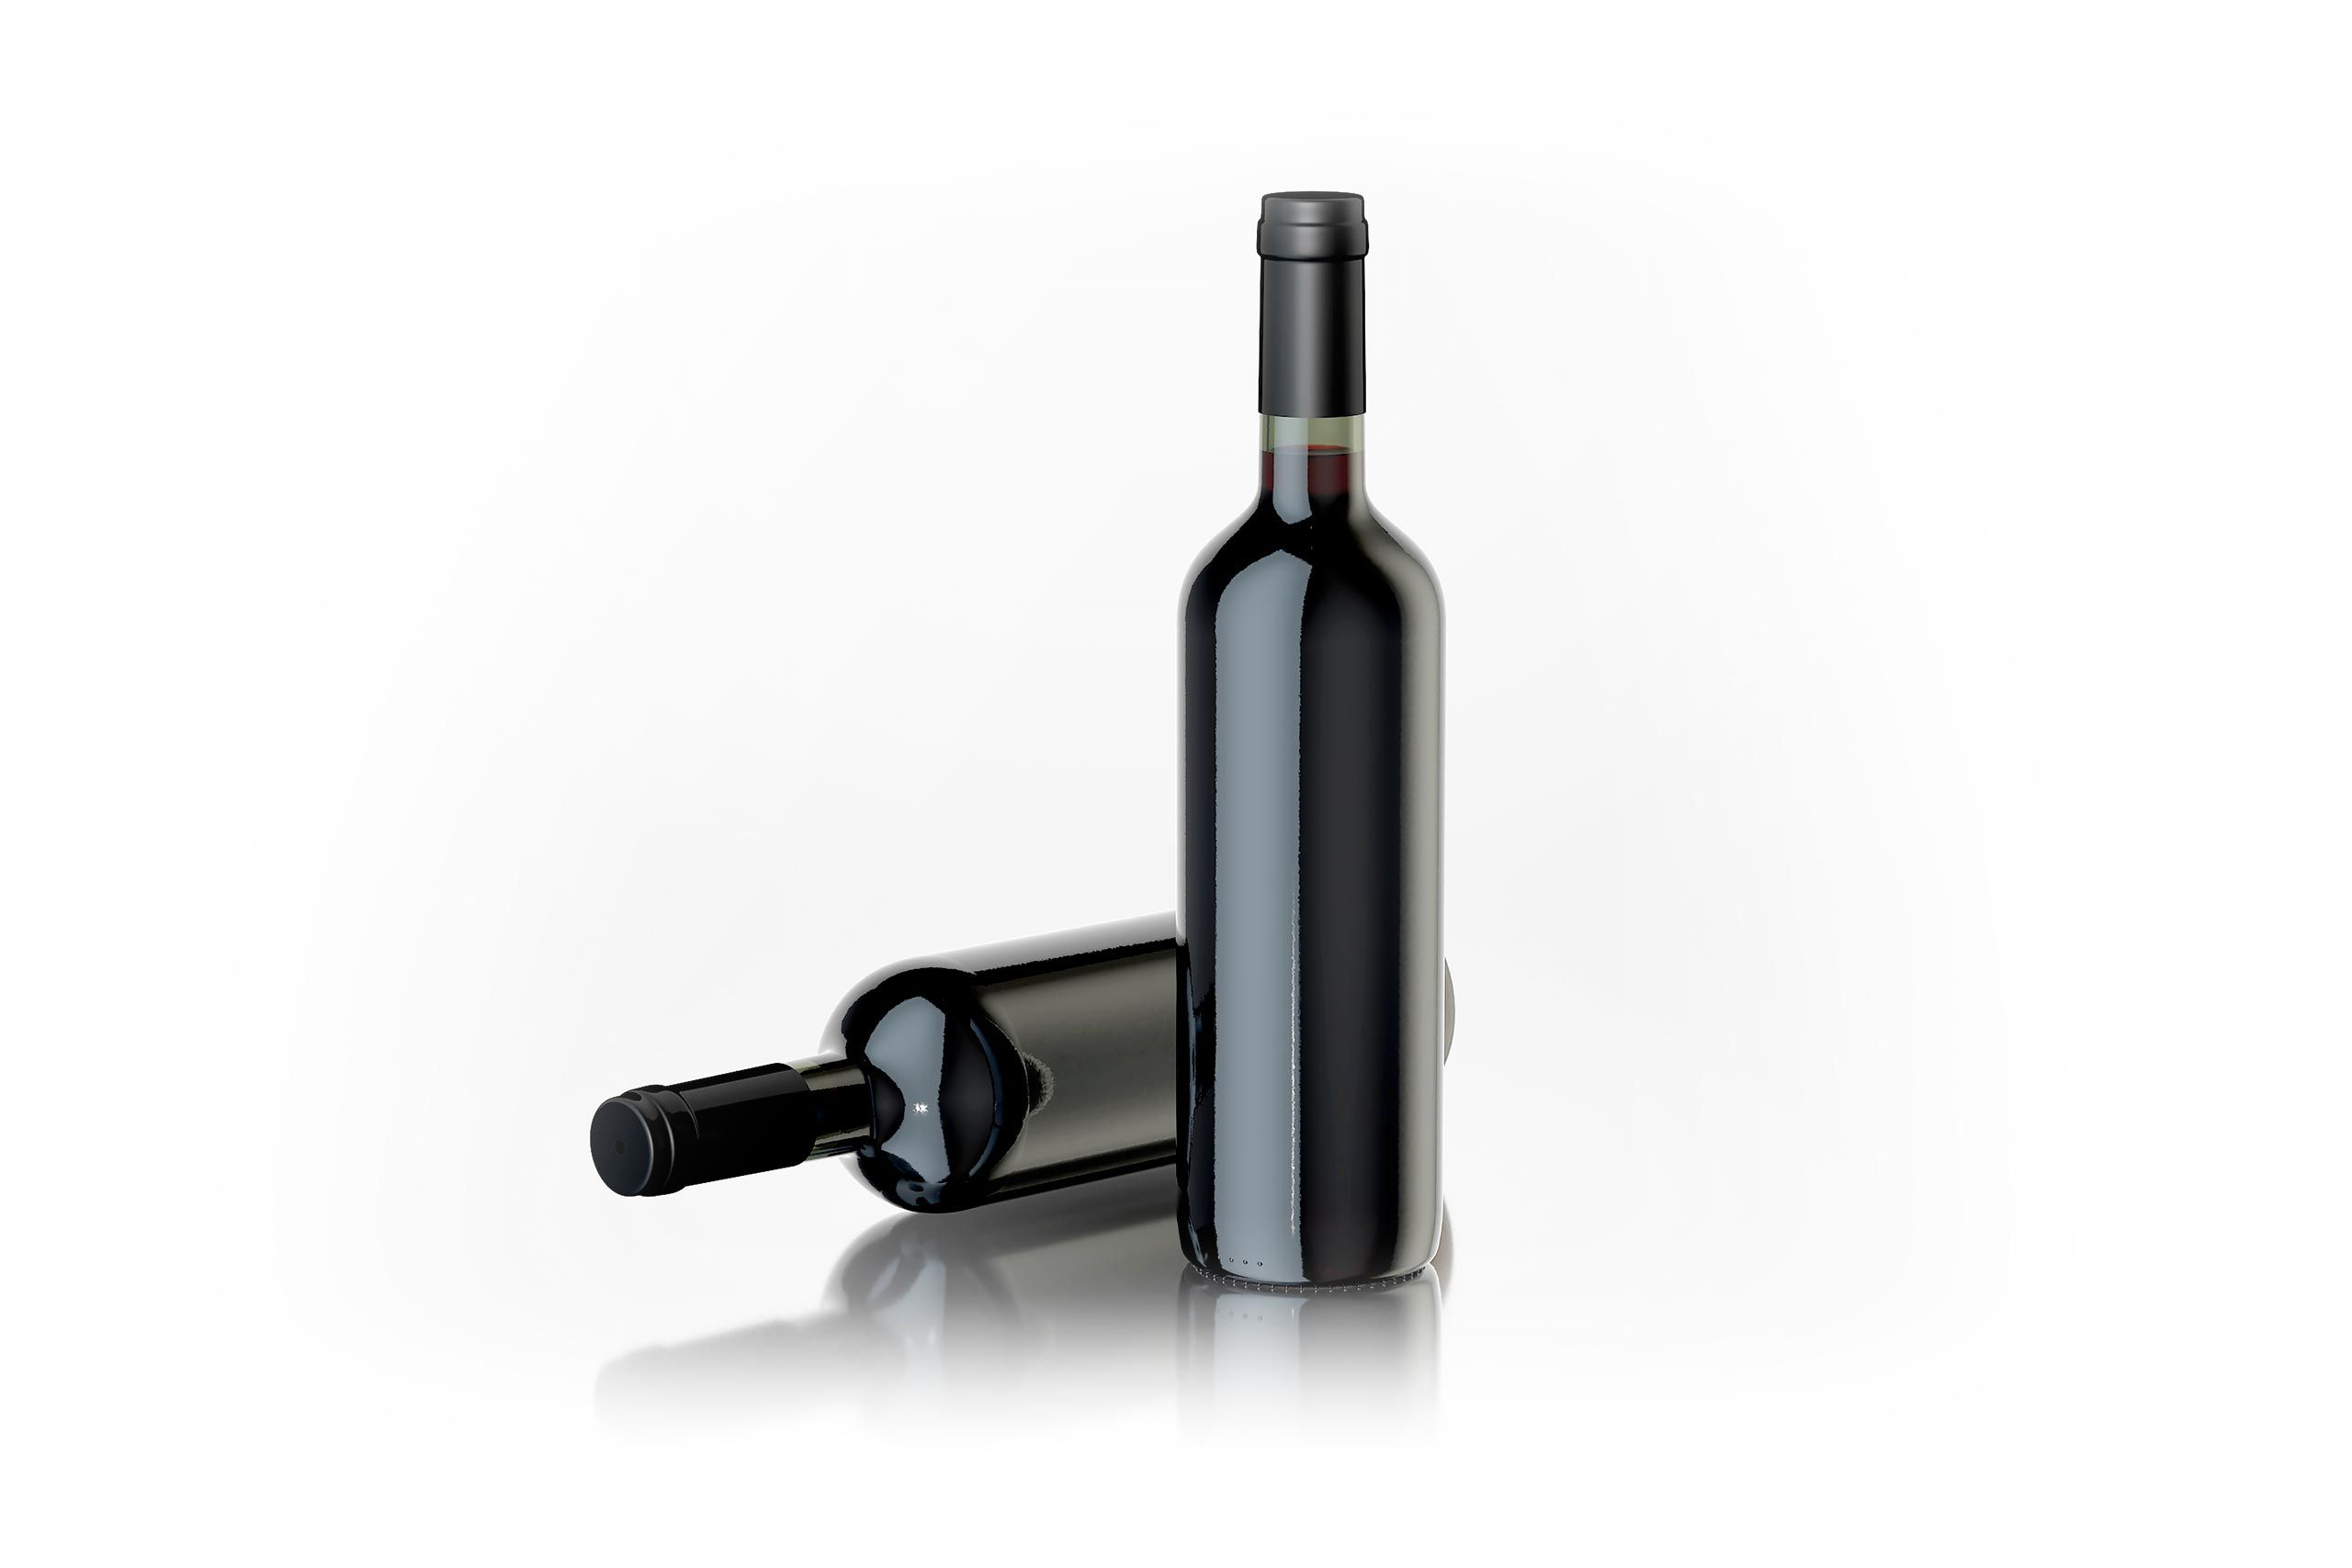 4D Max Cinema free 3d model of a standard wine bottle for cinema 4d and 3d max